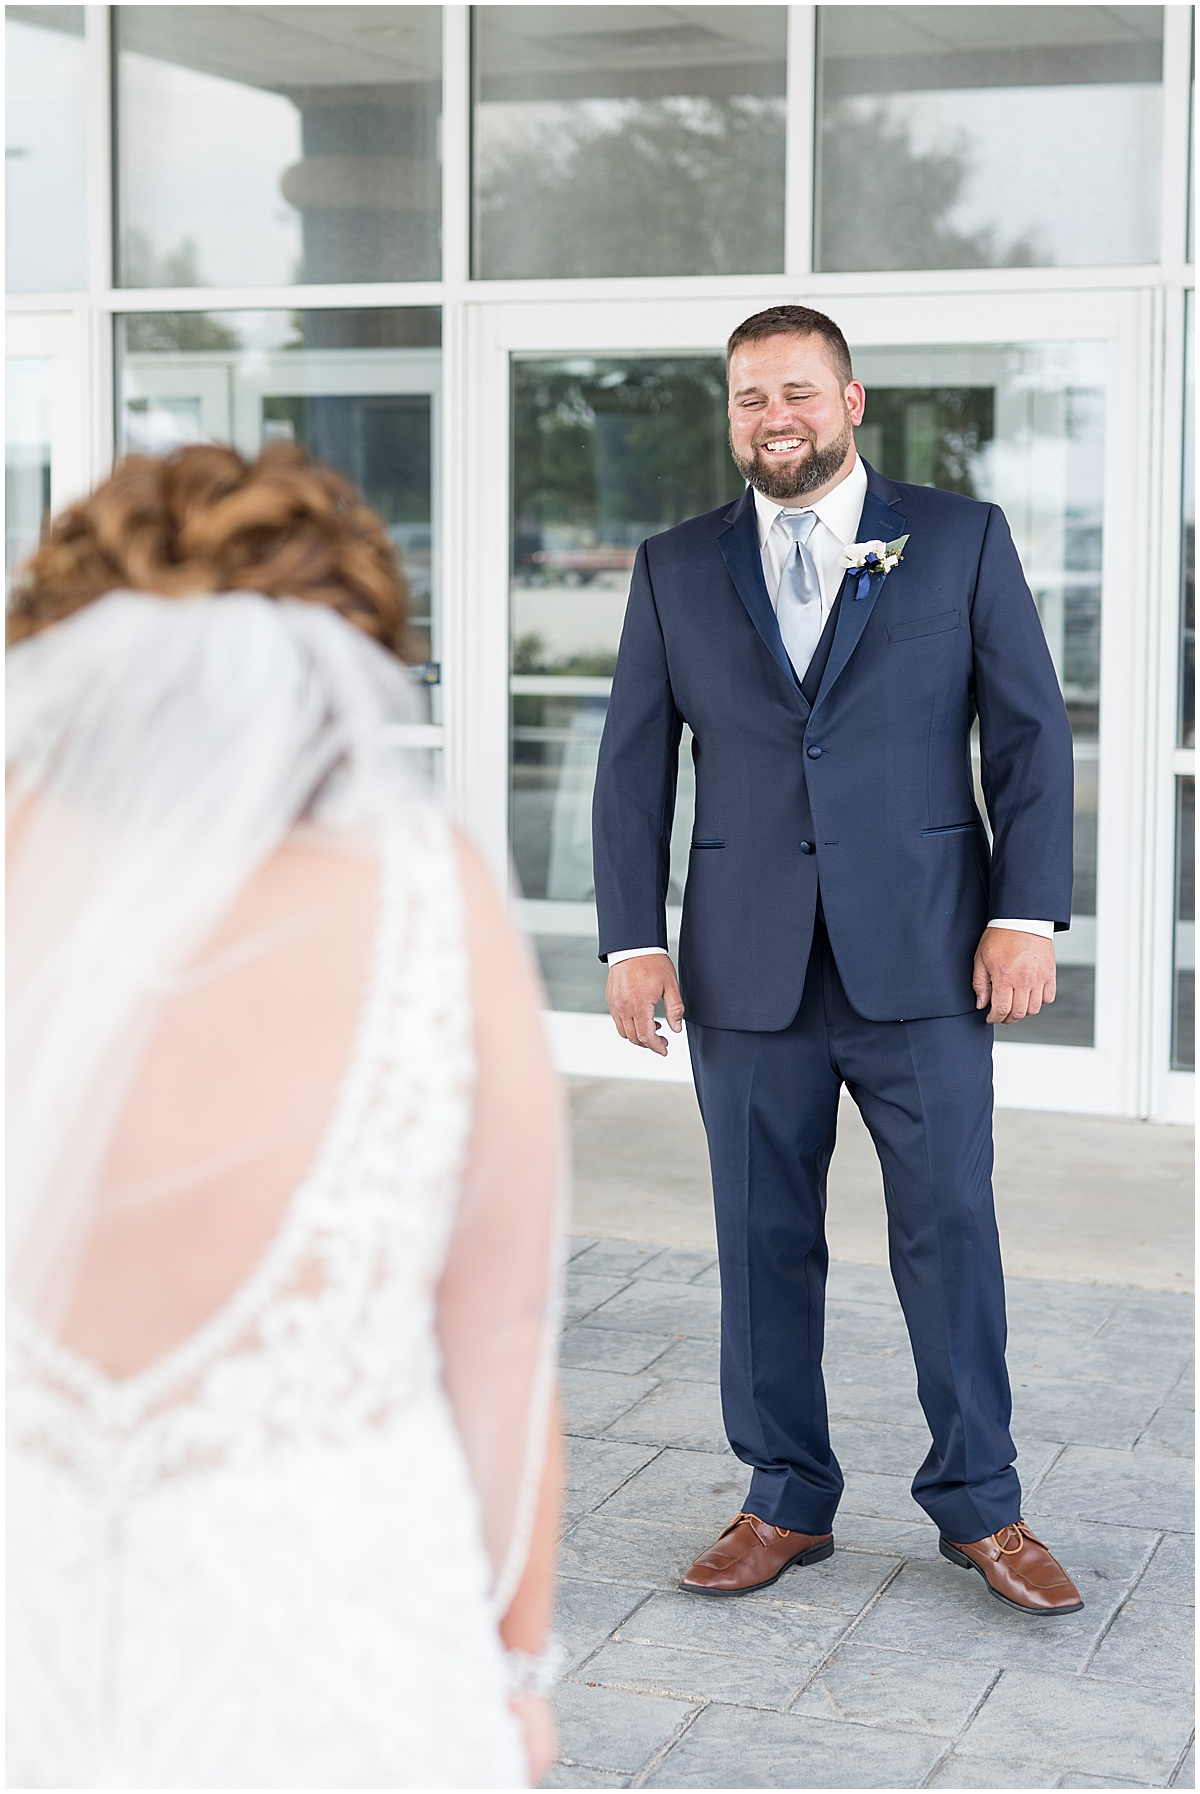 First look reaction at a wedding at The Brandywine in Monticello, Indiana